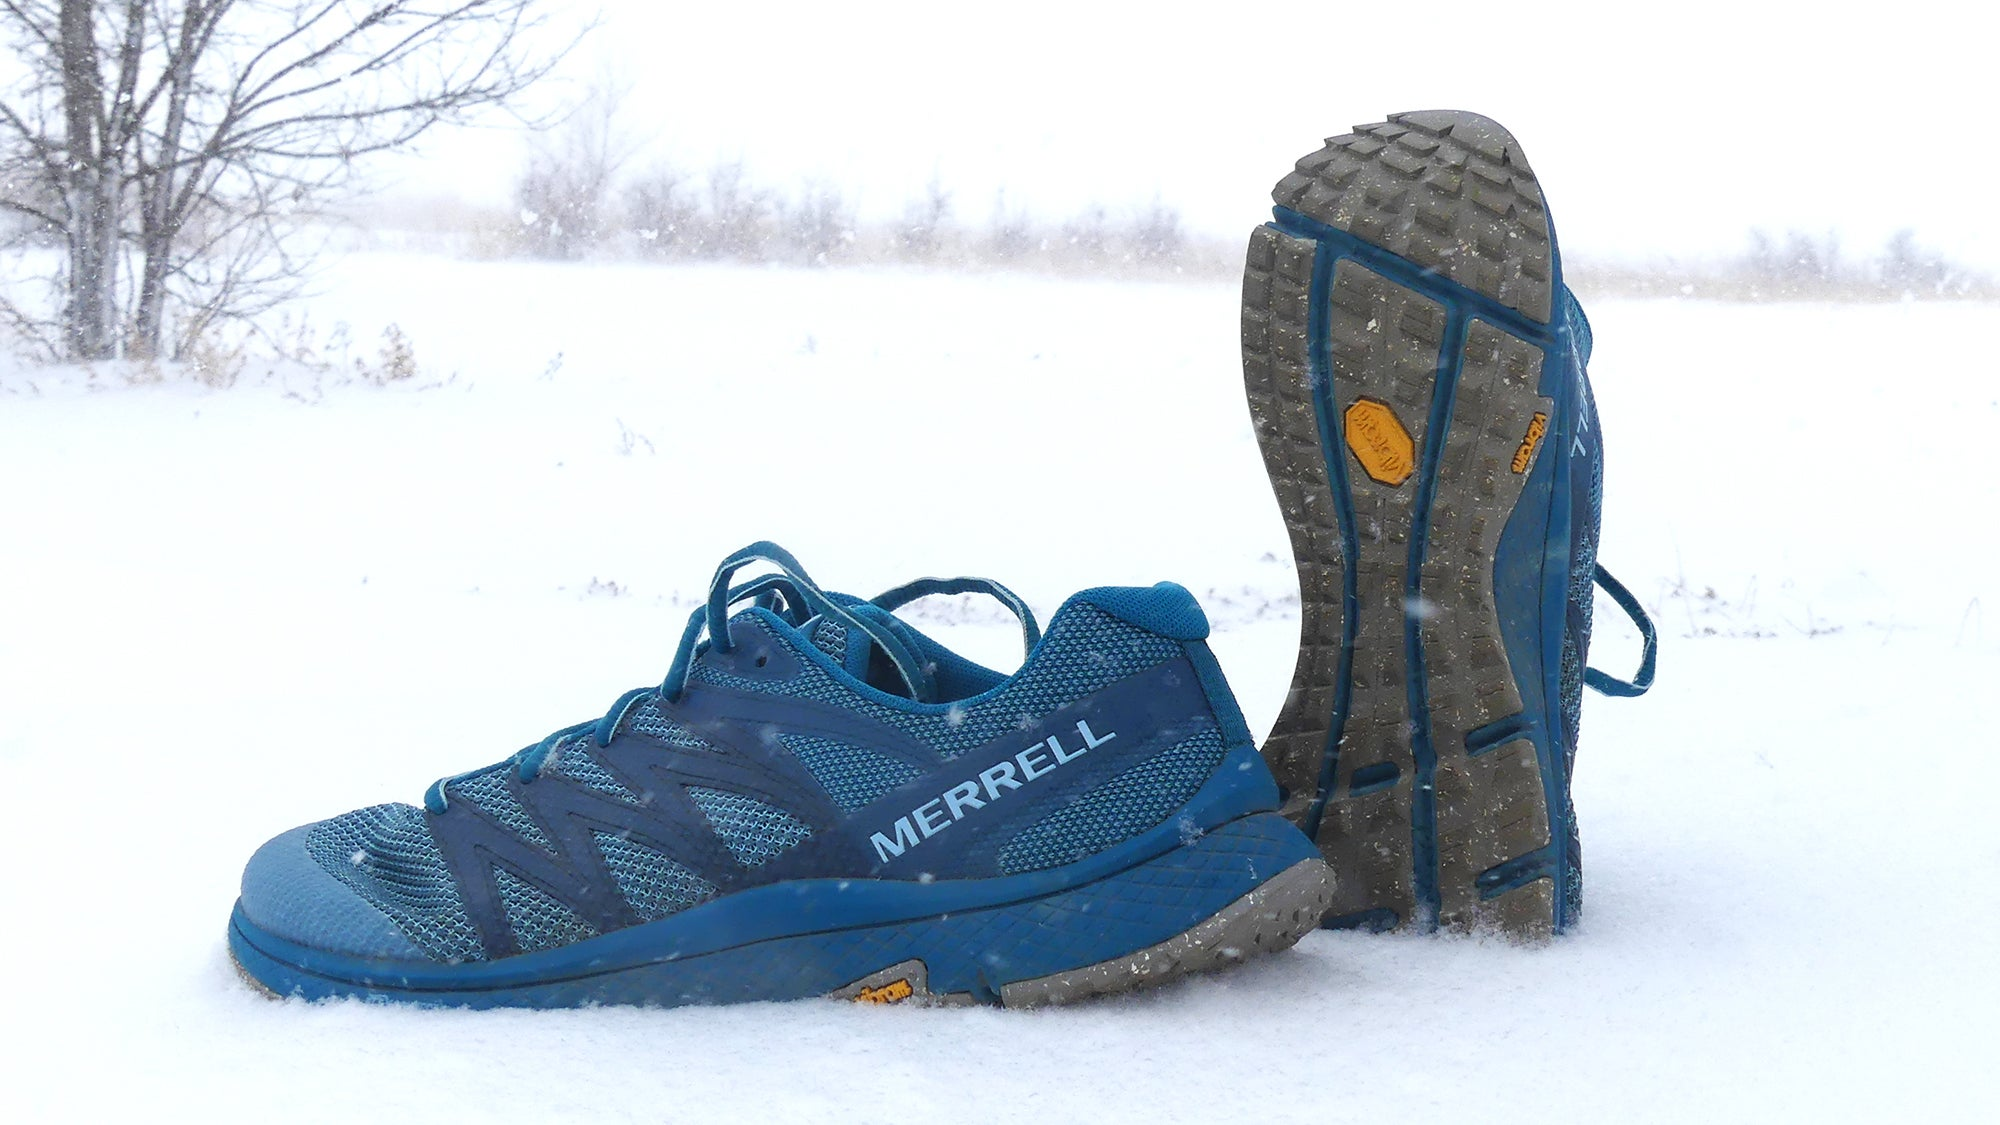 Merrell Bare Access XTR Sweeper review